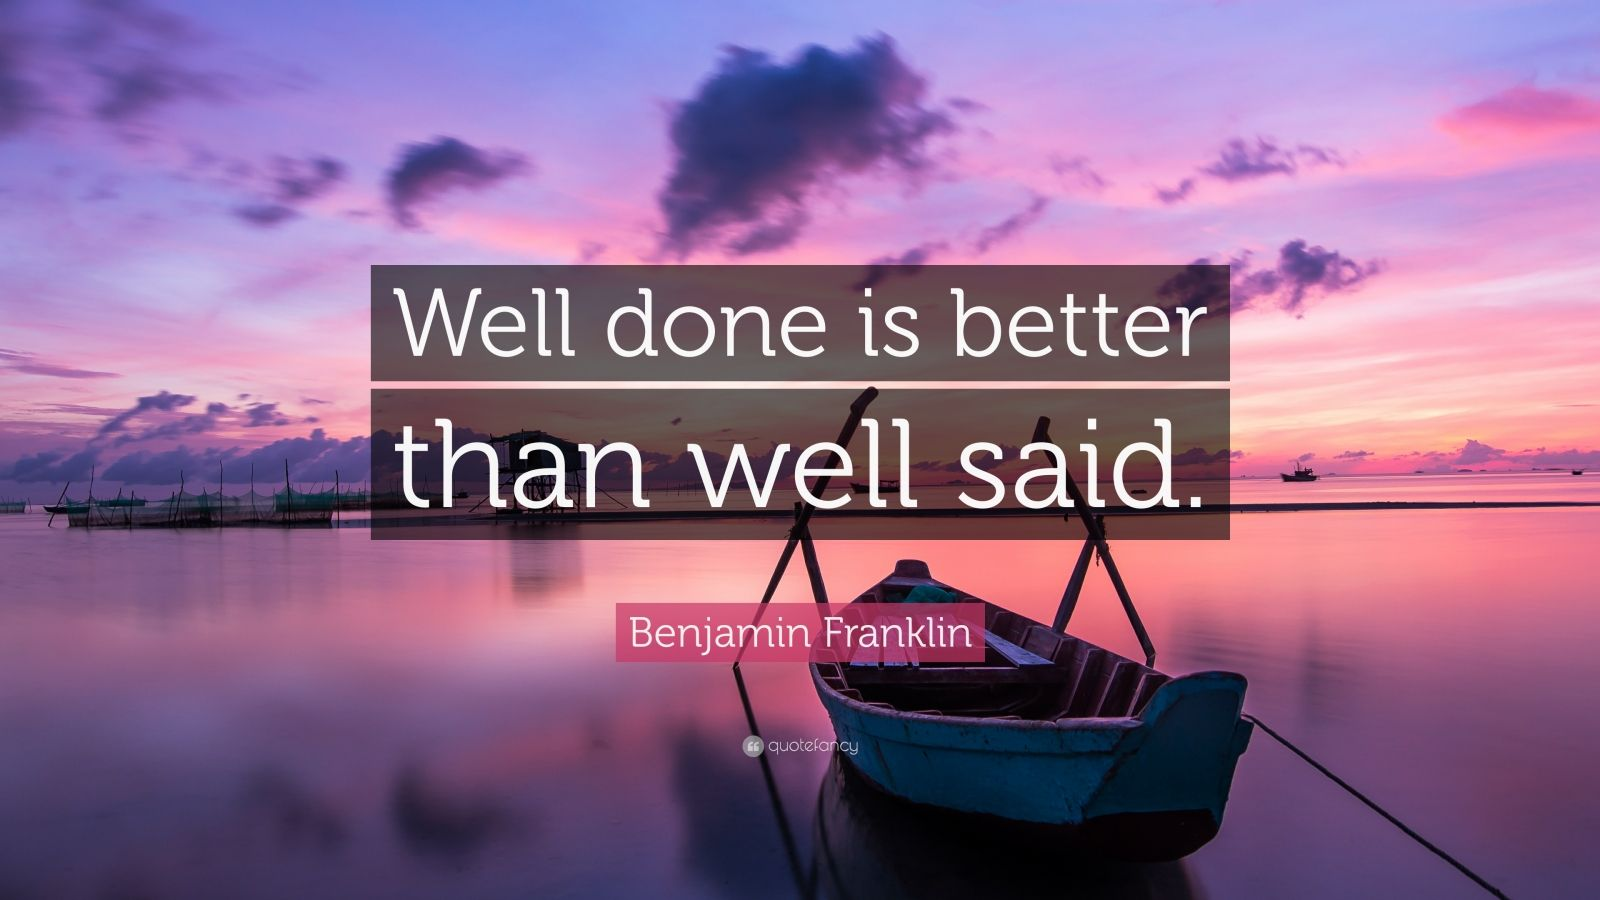 Beautiful Wallpapers With Inspirational Quotes Benjamin Franklin Quote Well Done Is Better Than Well